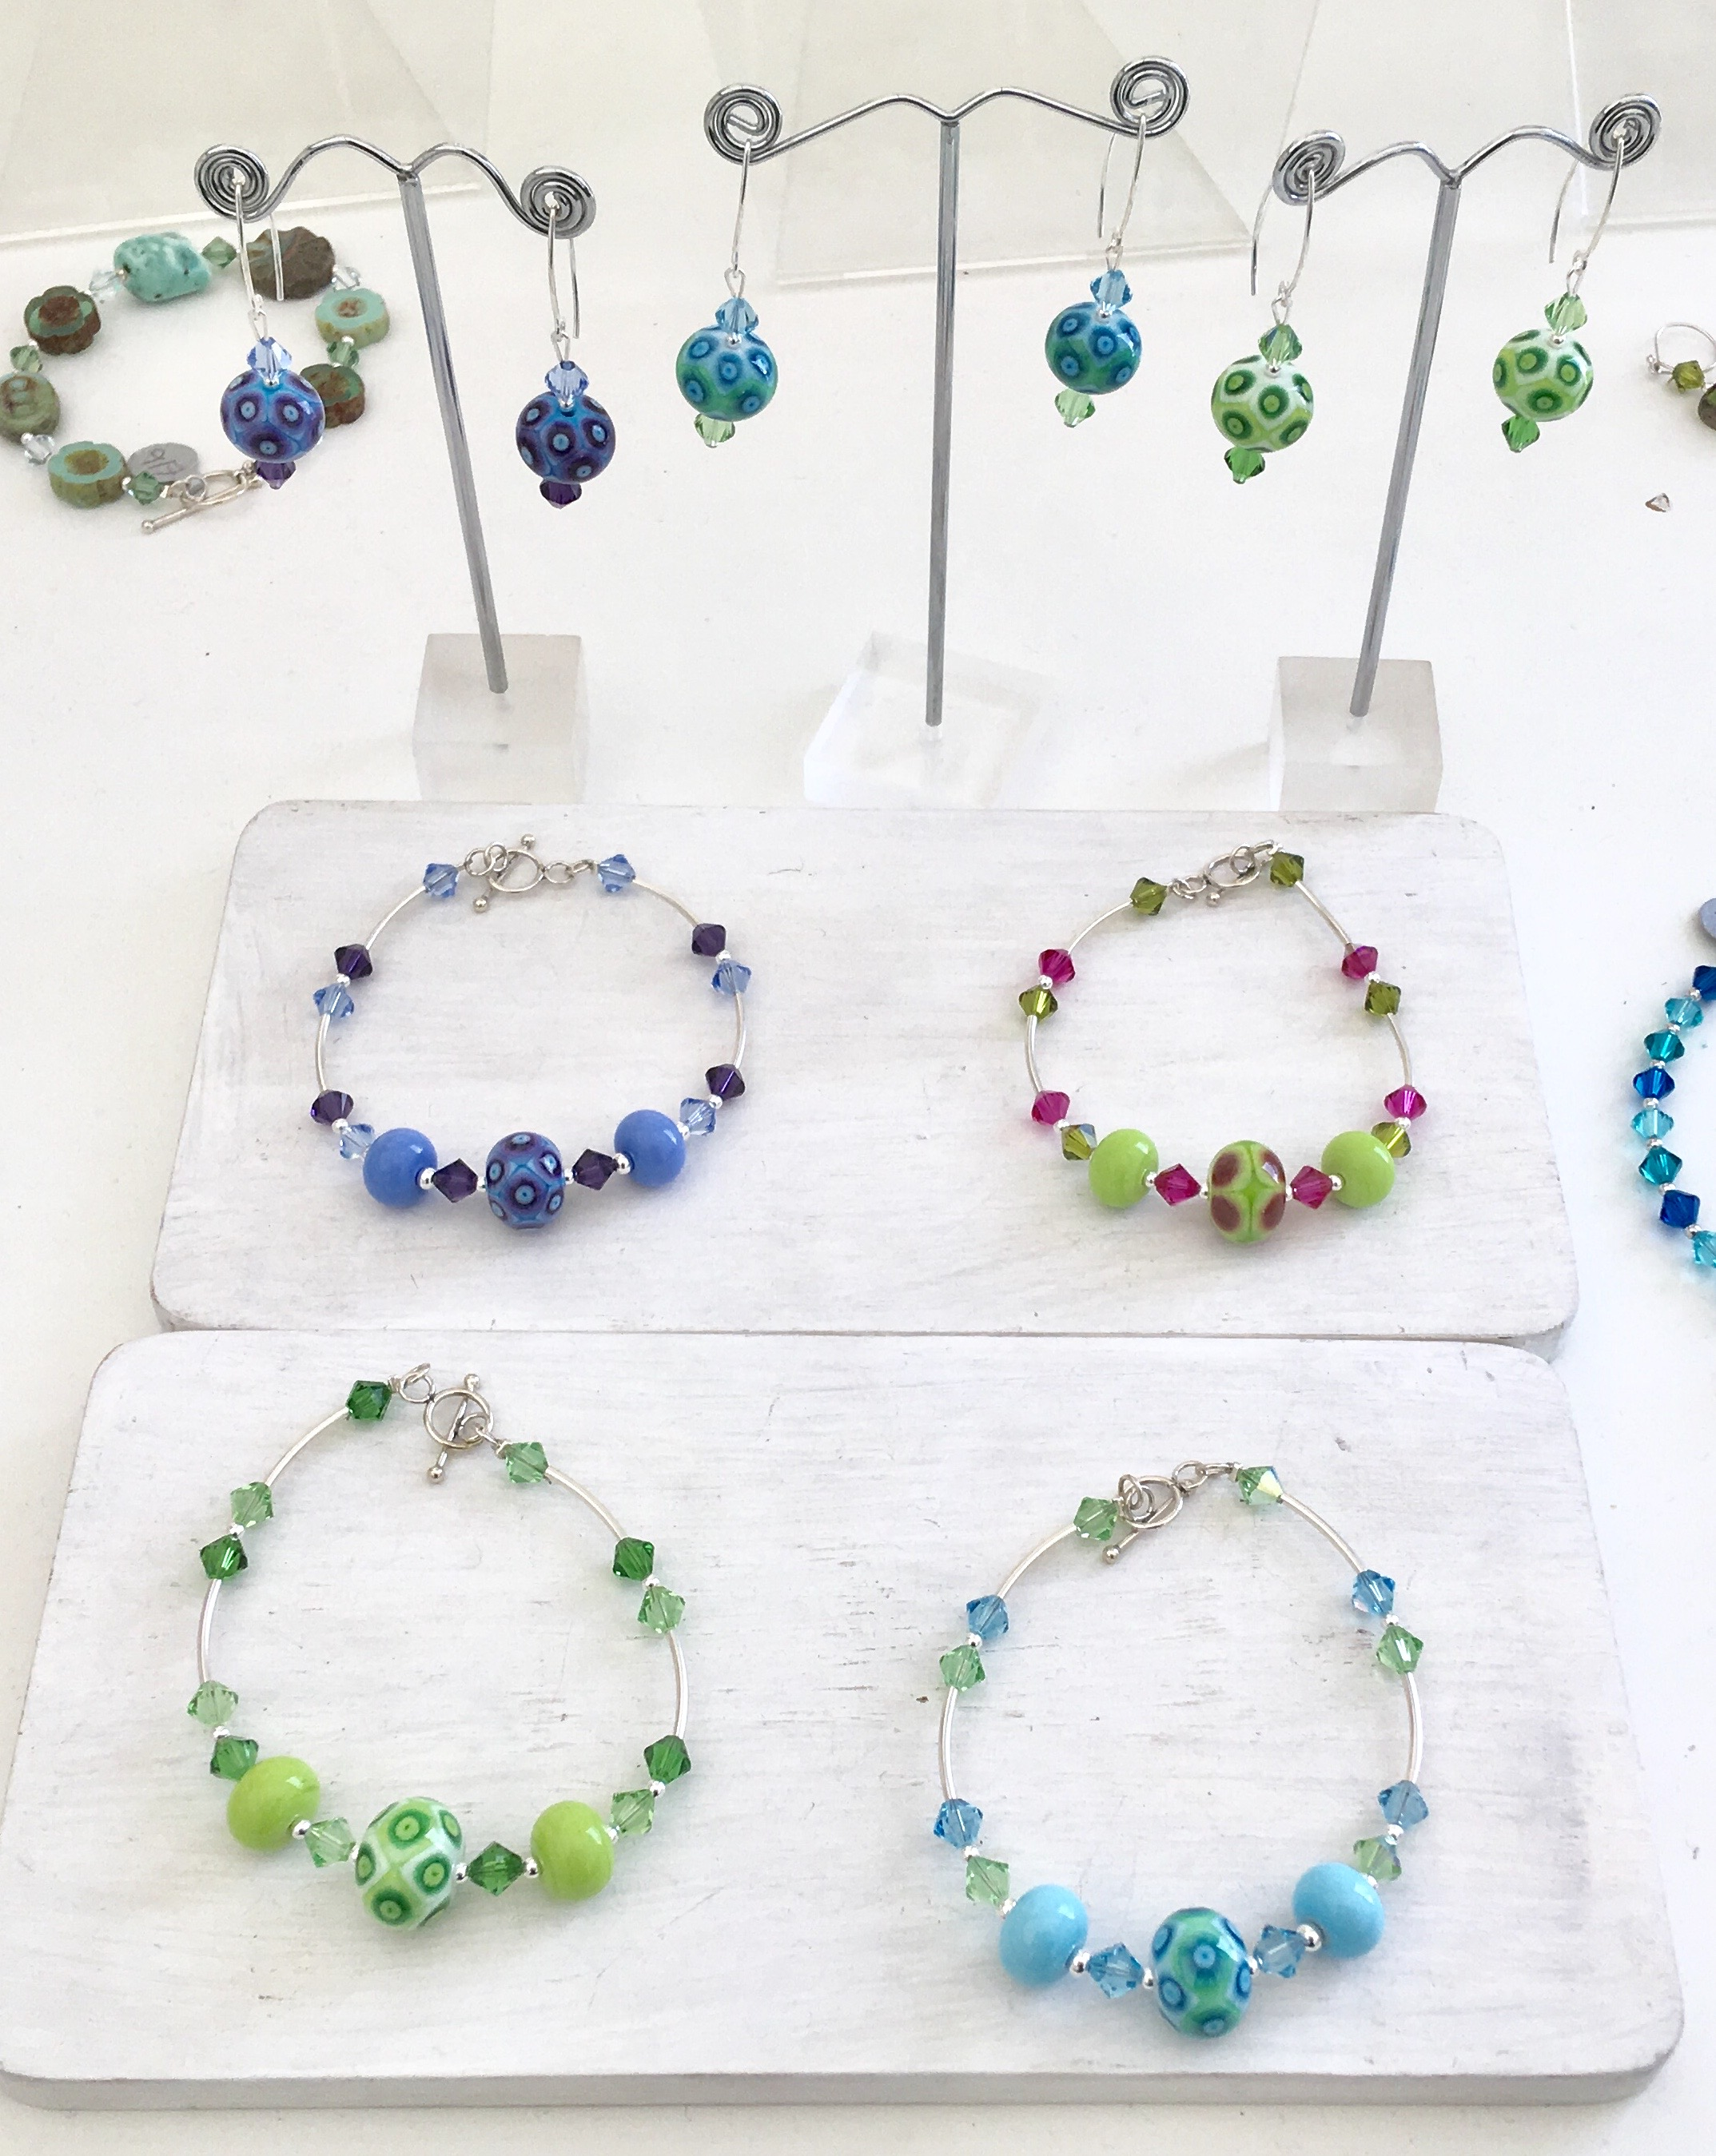 Picture courtesy of Gill Connolly, Rohanna Jewellery